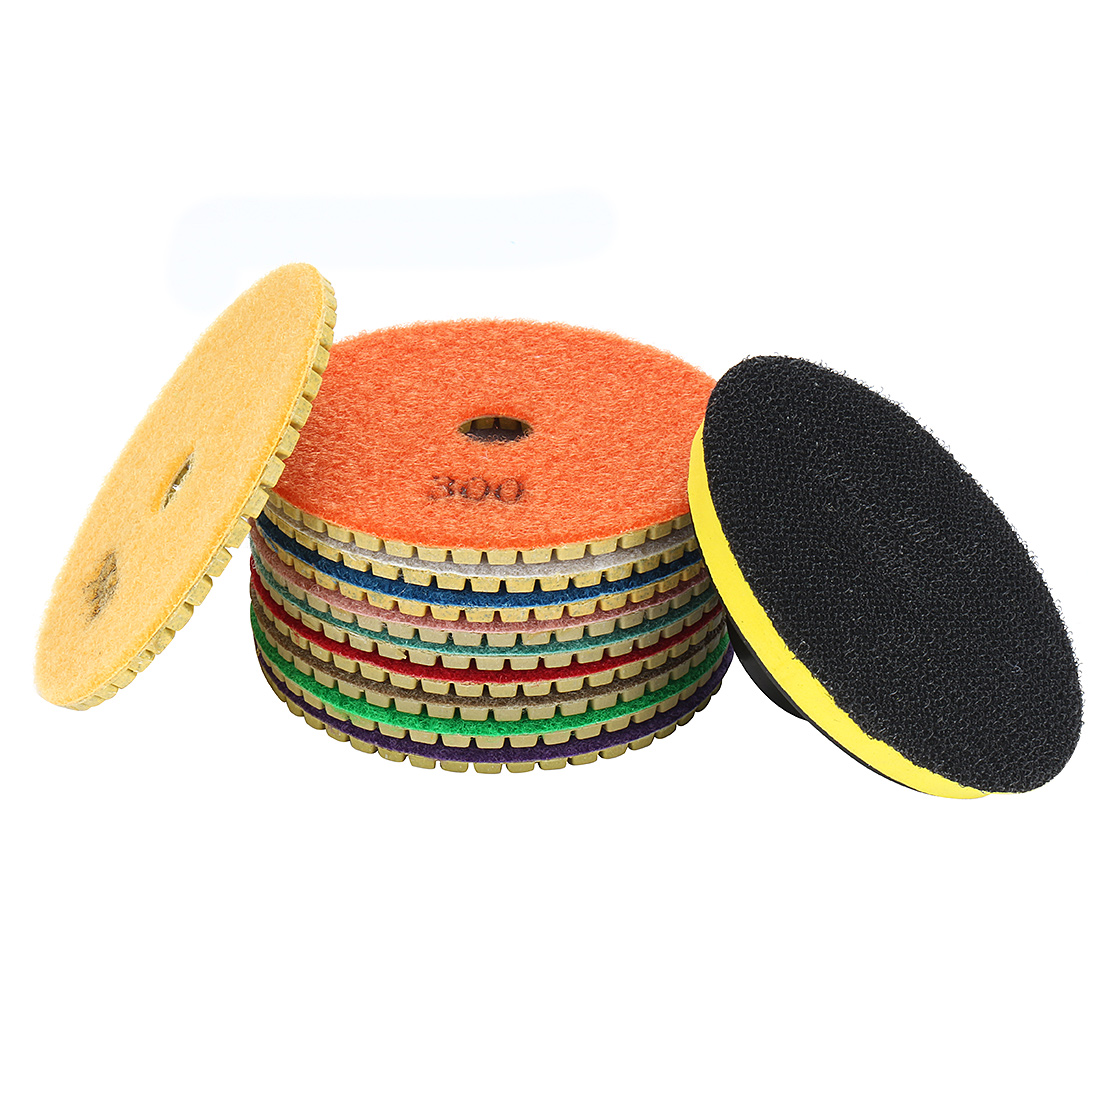 "4"" Diamond Wet Polishing Pads Disc 10 in 1 for Granite Concrete Marble"